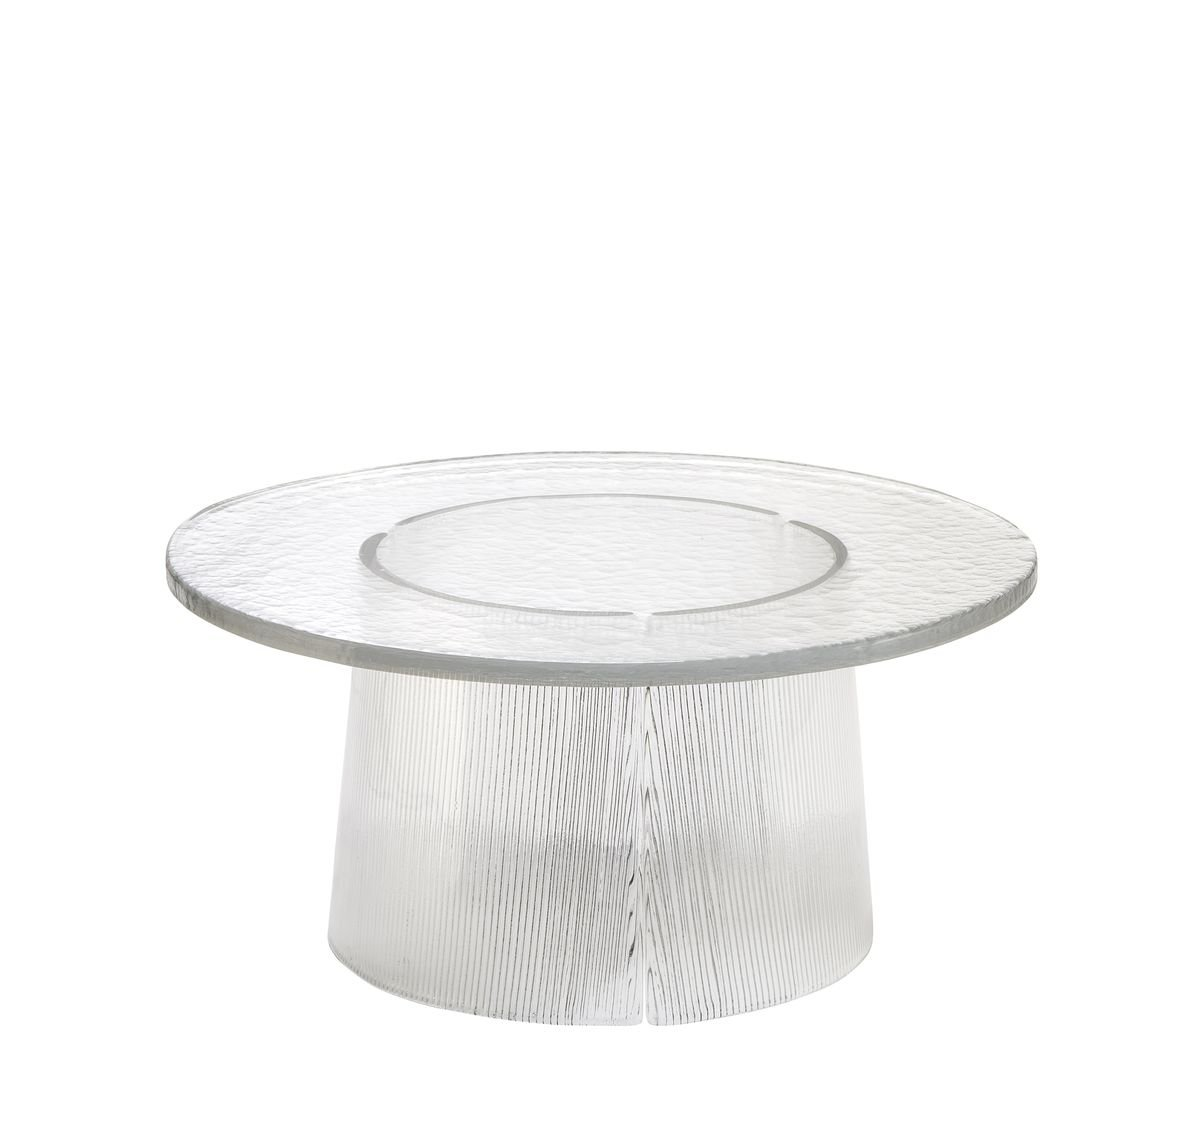 Large Bent Side Table 2375t In Transparent By Sebastian Herkner For Pulpo For Sale At Pamono [ 1140 x 1200 Pixel ]